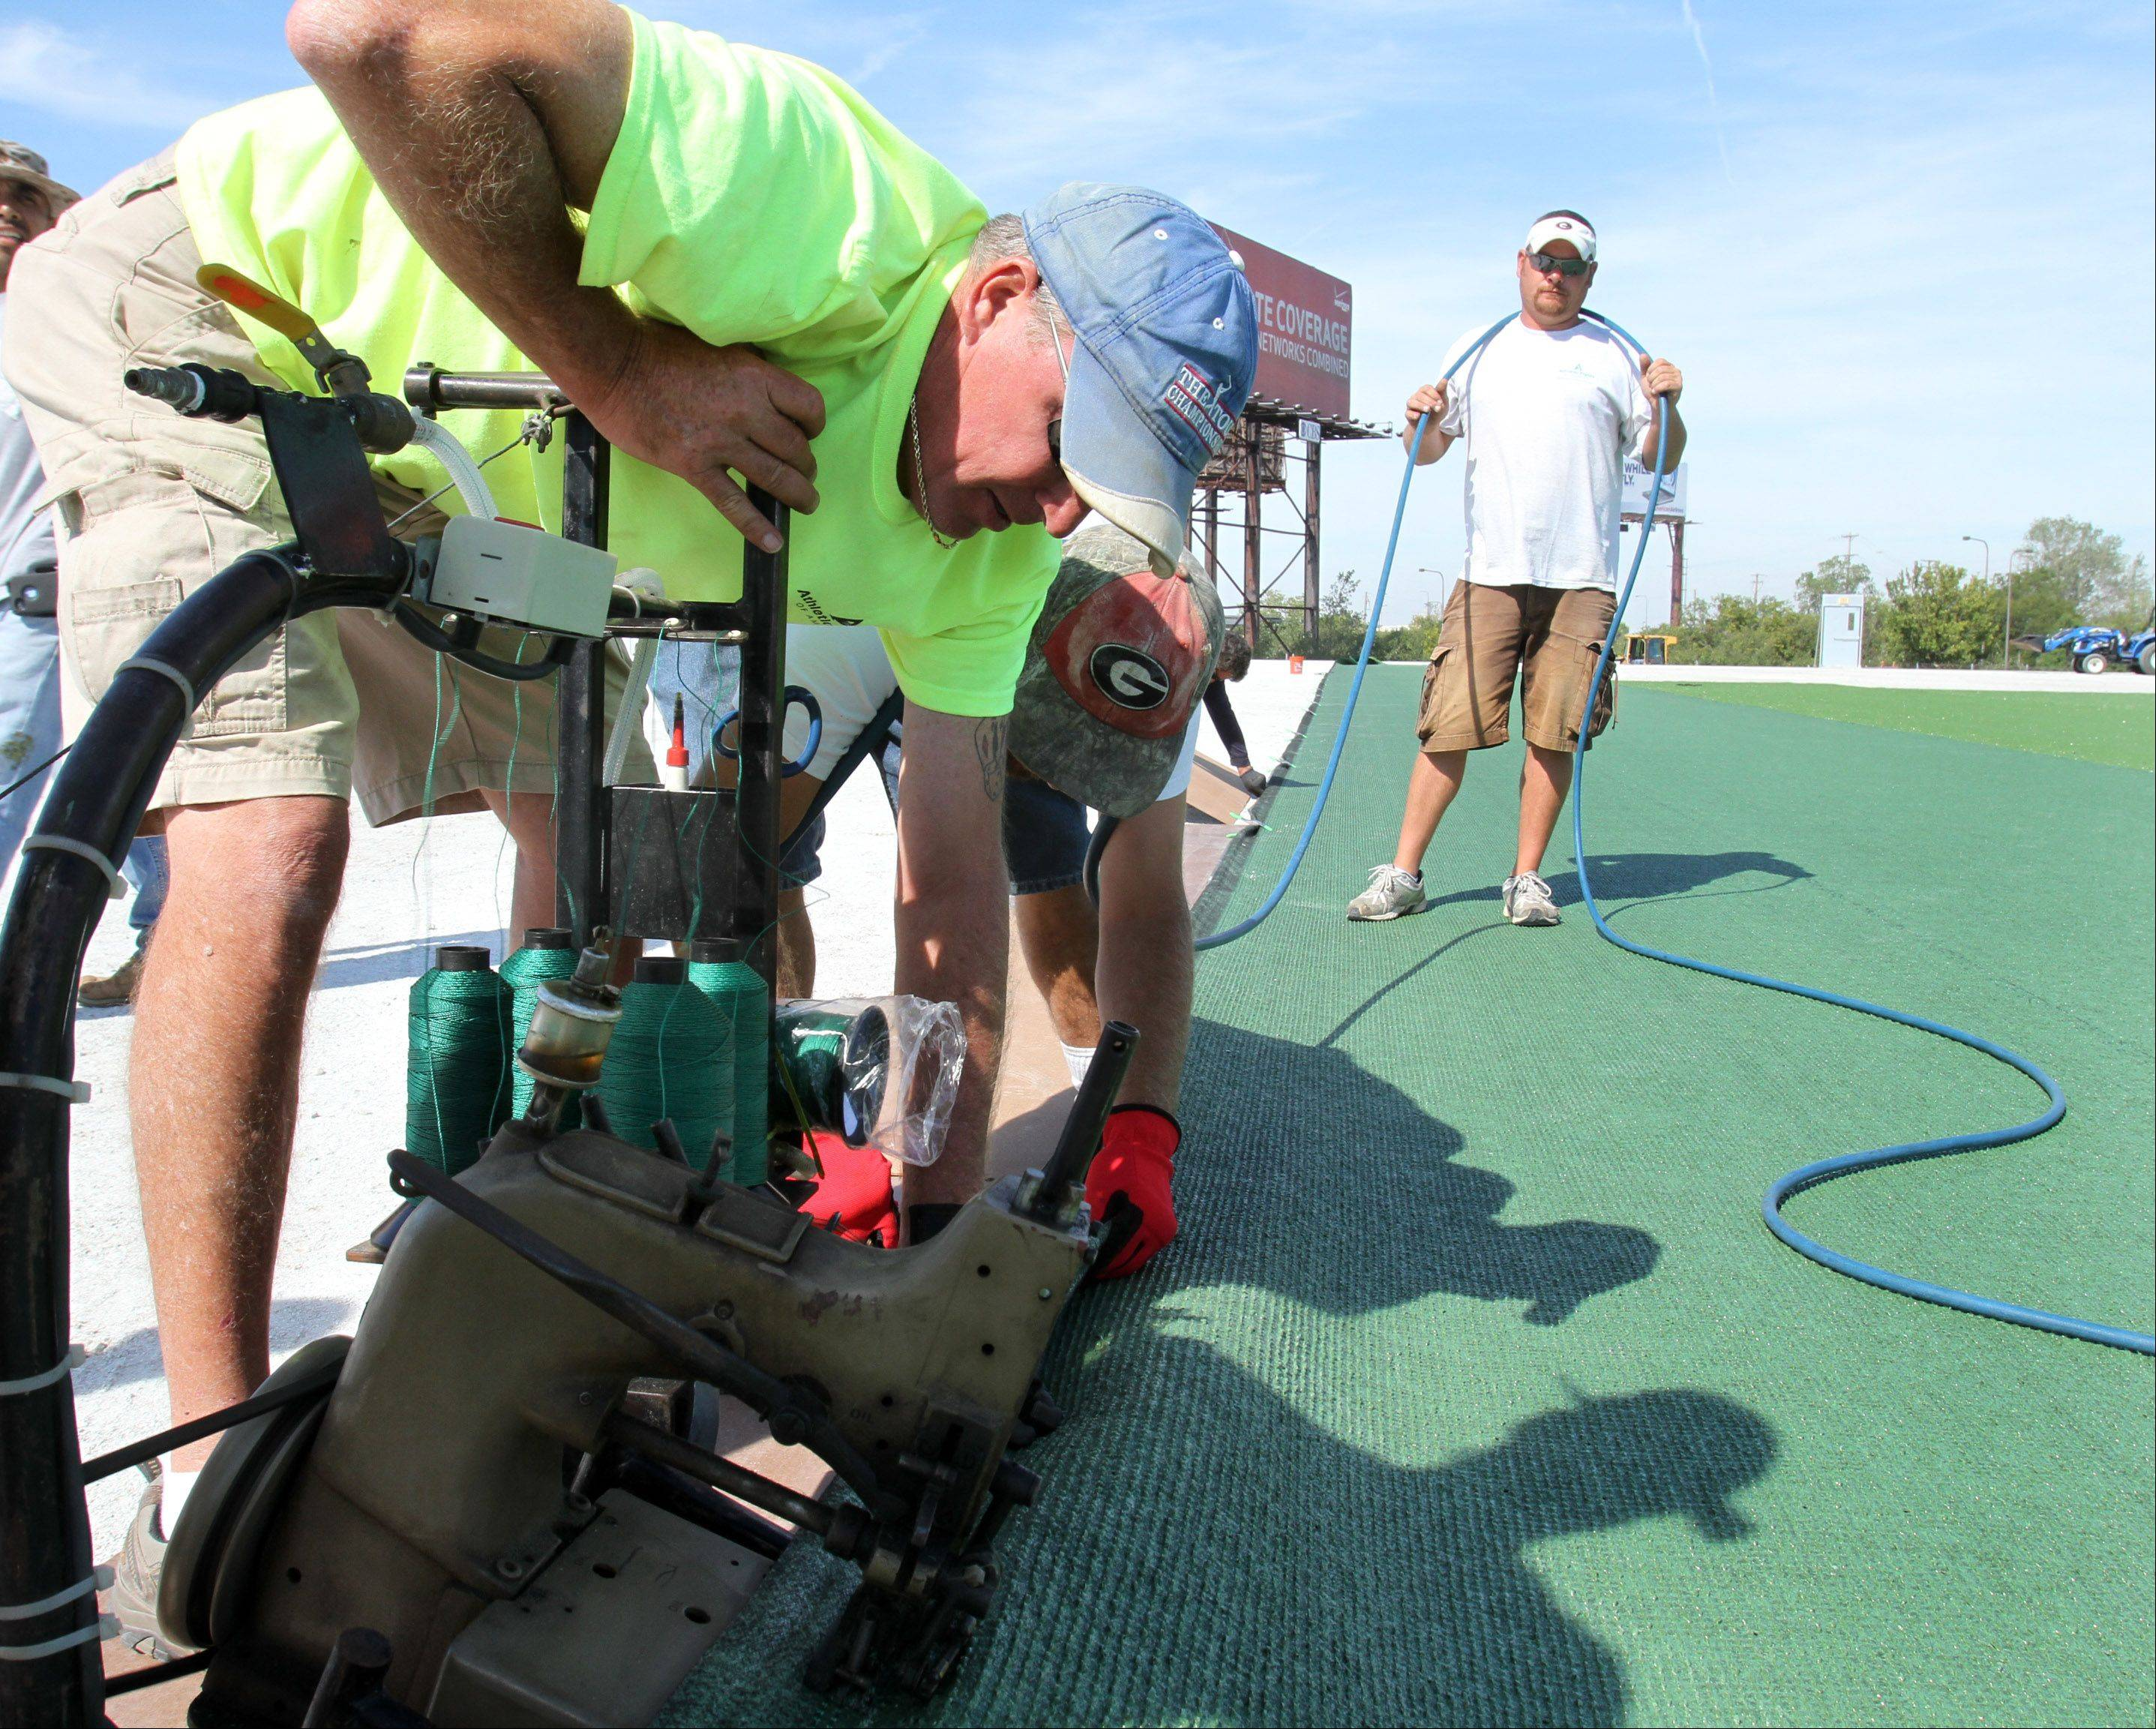 Jrone Jones with Athletic Fields of America, foreground, uses a sewing machine on a cart to stitch an artificial turf covering the ground for a new seven-story dome for an indoor athletic training facility in Rosemont.